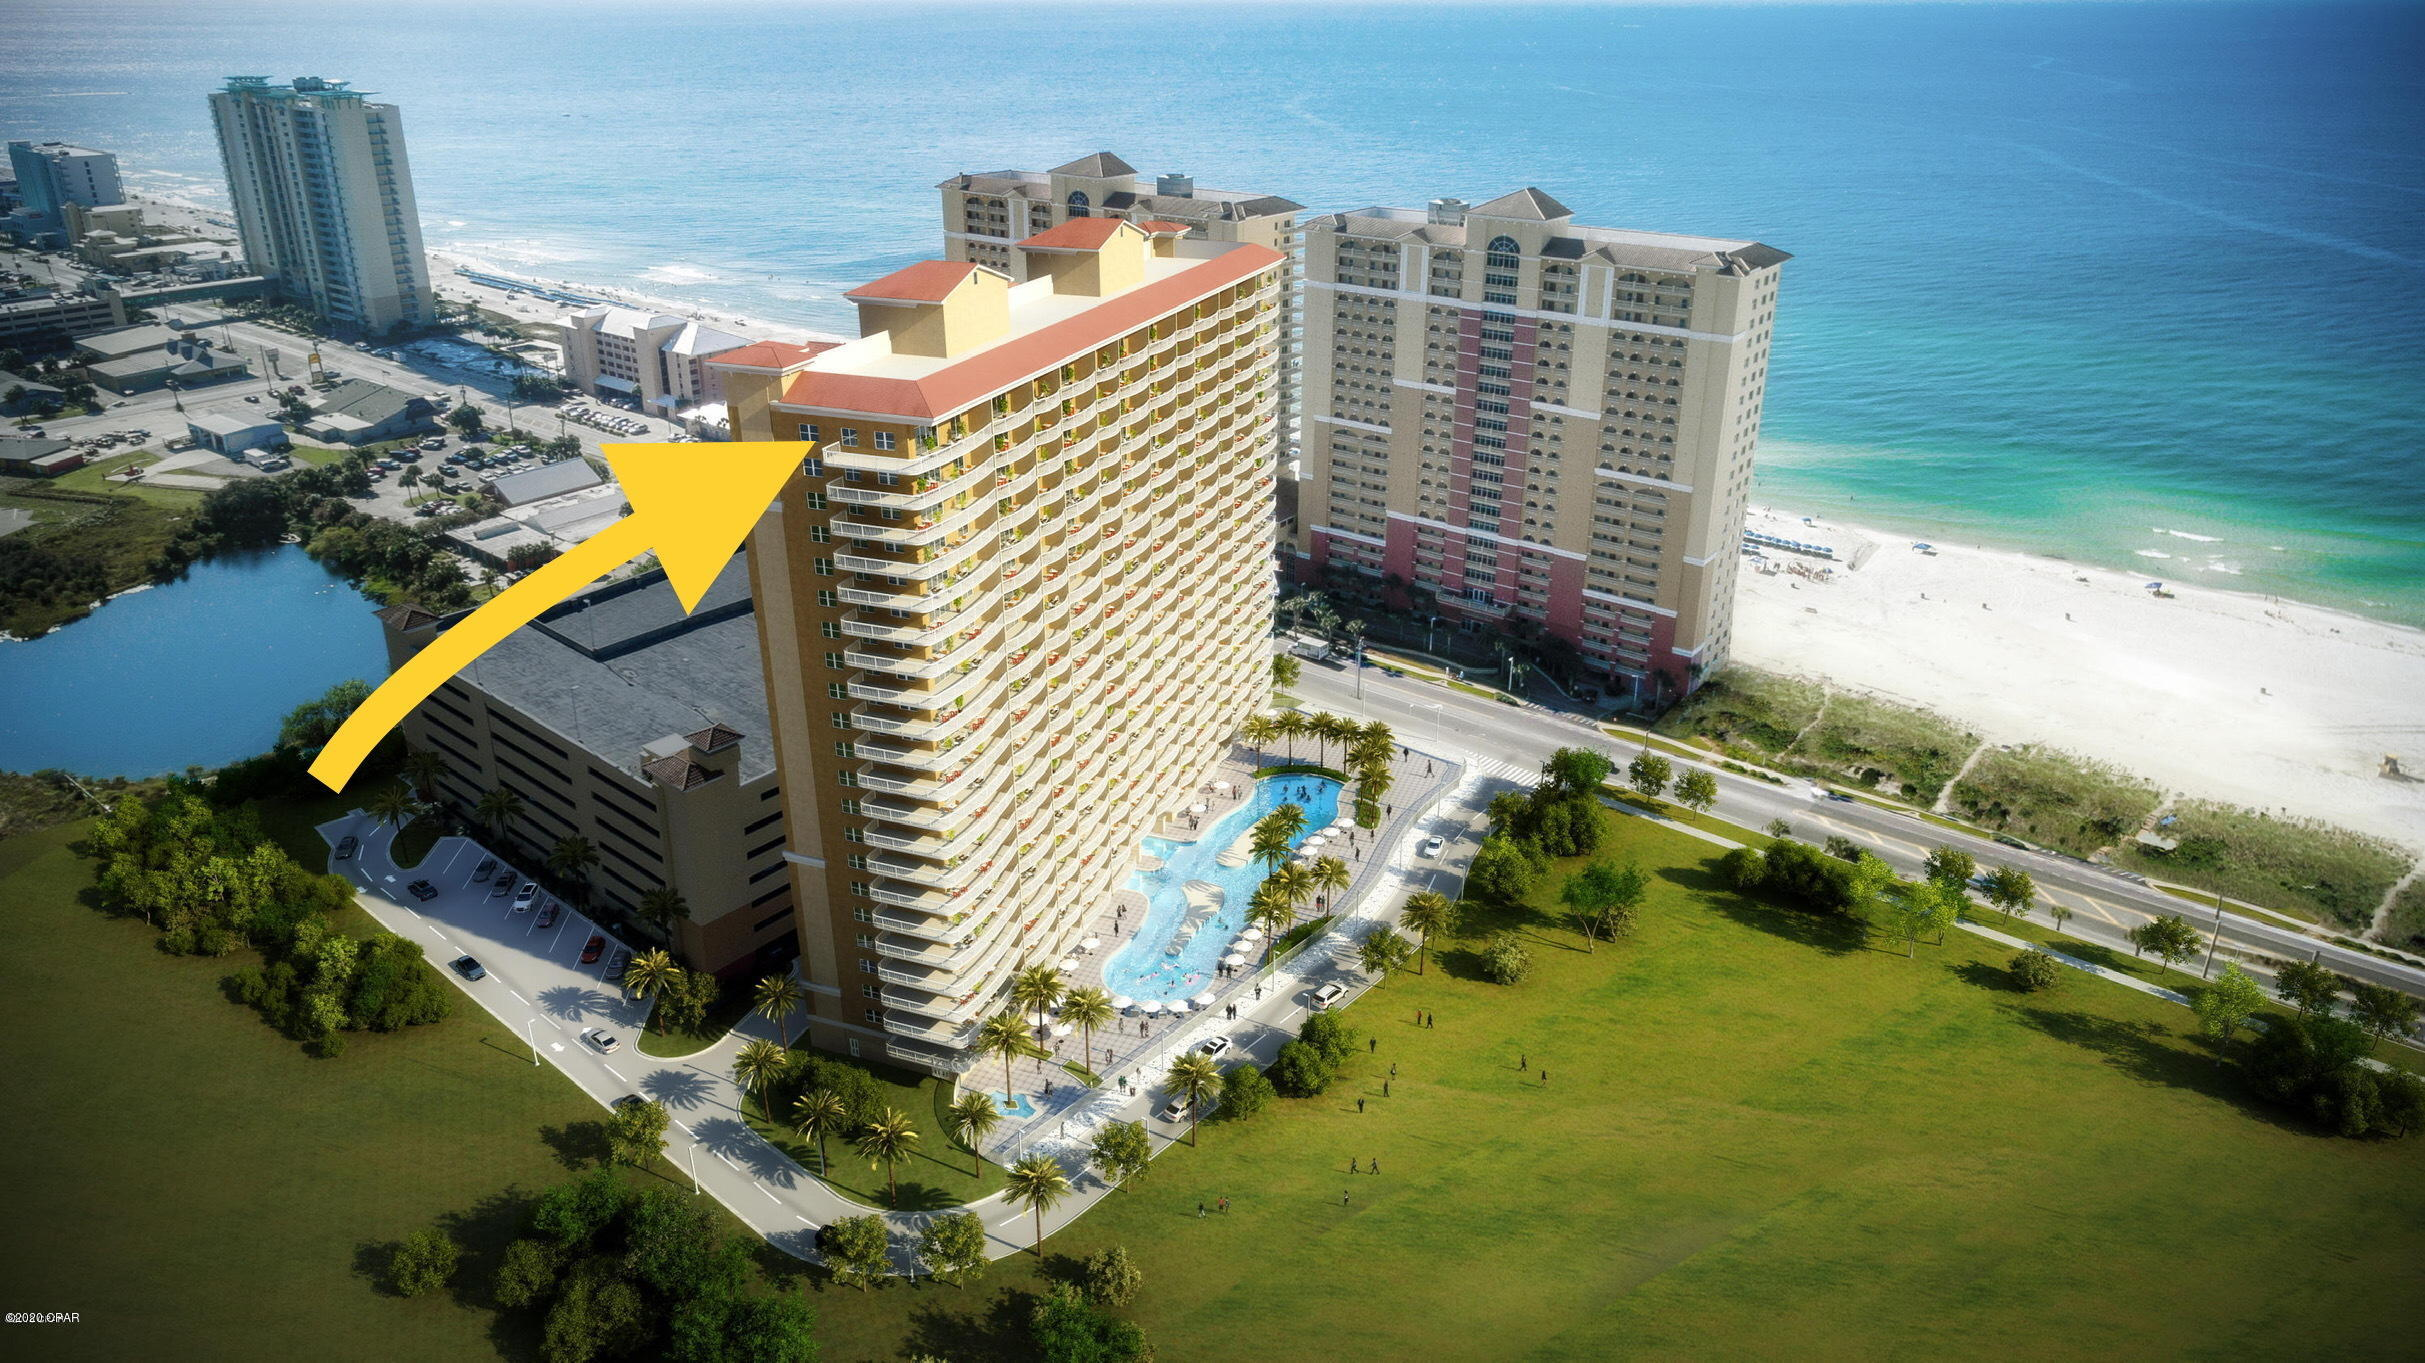 See PCB like never before! Premium Penthouse with 10 ft. Ceilings and the only Full Sun Balcony in the Complex. Massive Wrap Balcony overlooks the Eastern And Western Skyline including views of: The Beautiful Florida Coastline, Panama City Beach Pier, The Famous PCB SkyWheel, All of Pier Park, as well as West Bay. This unit will also give you a front row seat to some of the best fireworks shows on the coast. Never again in your lifetime will you find a unit this unique. The first new PCB condominium built in the last 10 years. The complex offers resort type zero entry pool, hot tub, 2 Tiki bars and a fabulous spa. Words can not give justice to this unit. If you are looking for a penthouse executive unit, come out and have a look for yourself. This is an assignment of contract.